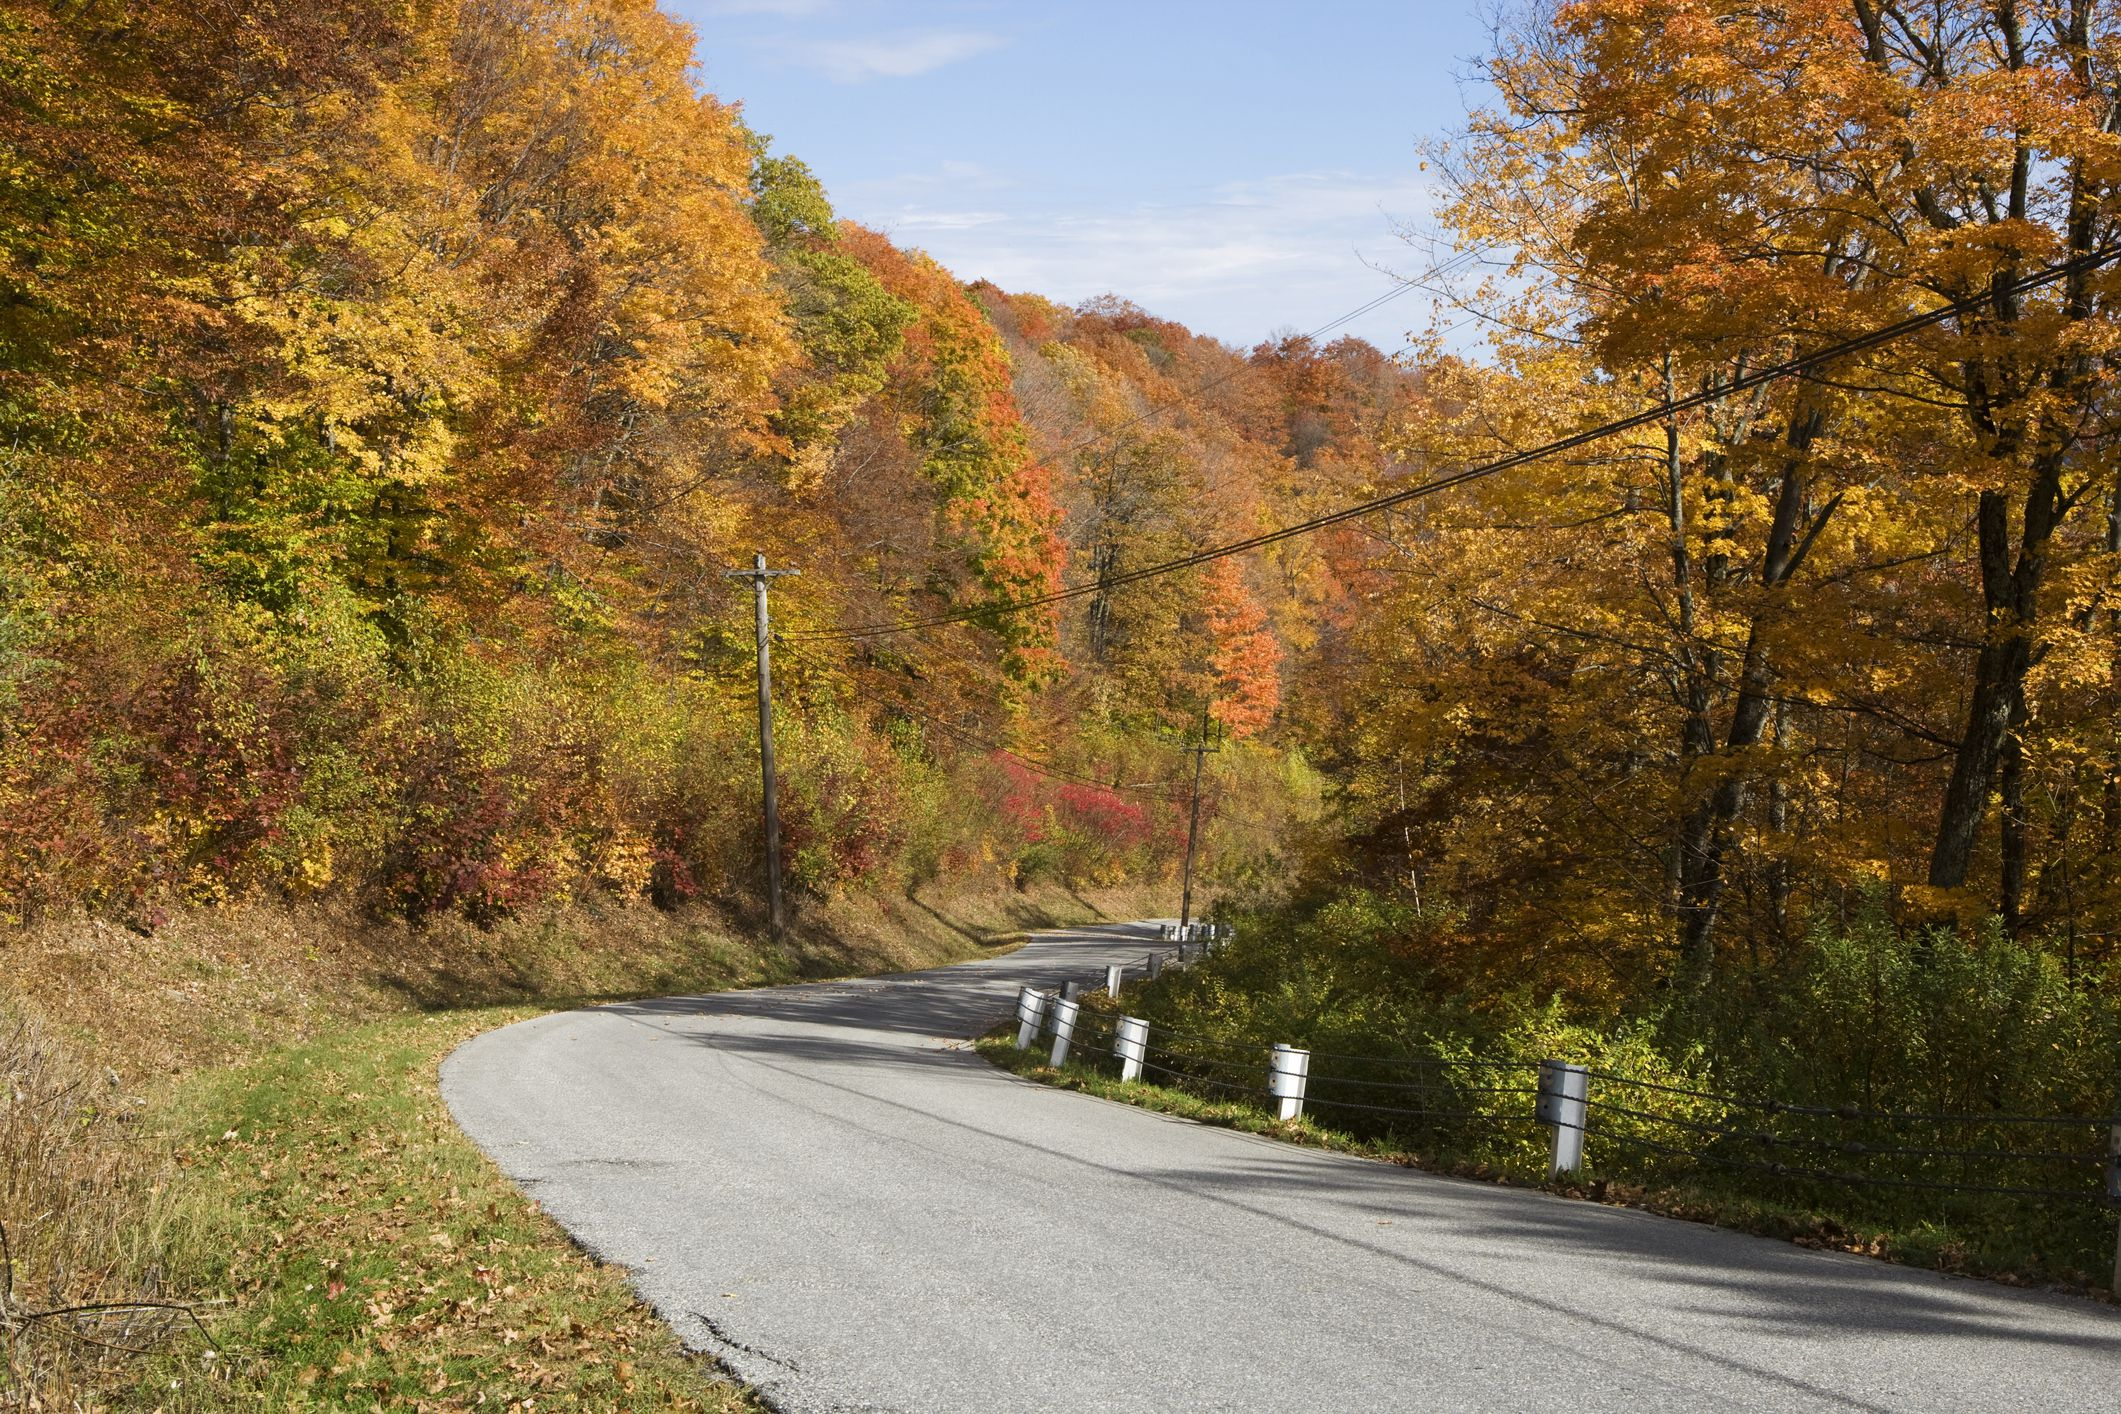 USA, Vermont, Mount Equinox, Skyline Drive, trees with autumn leaves lining road